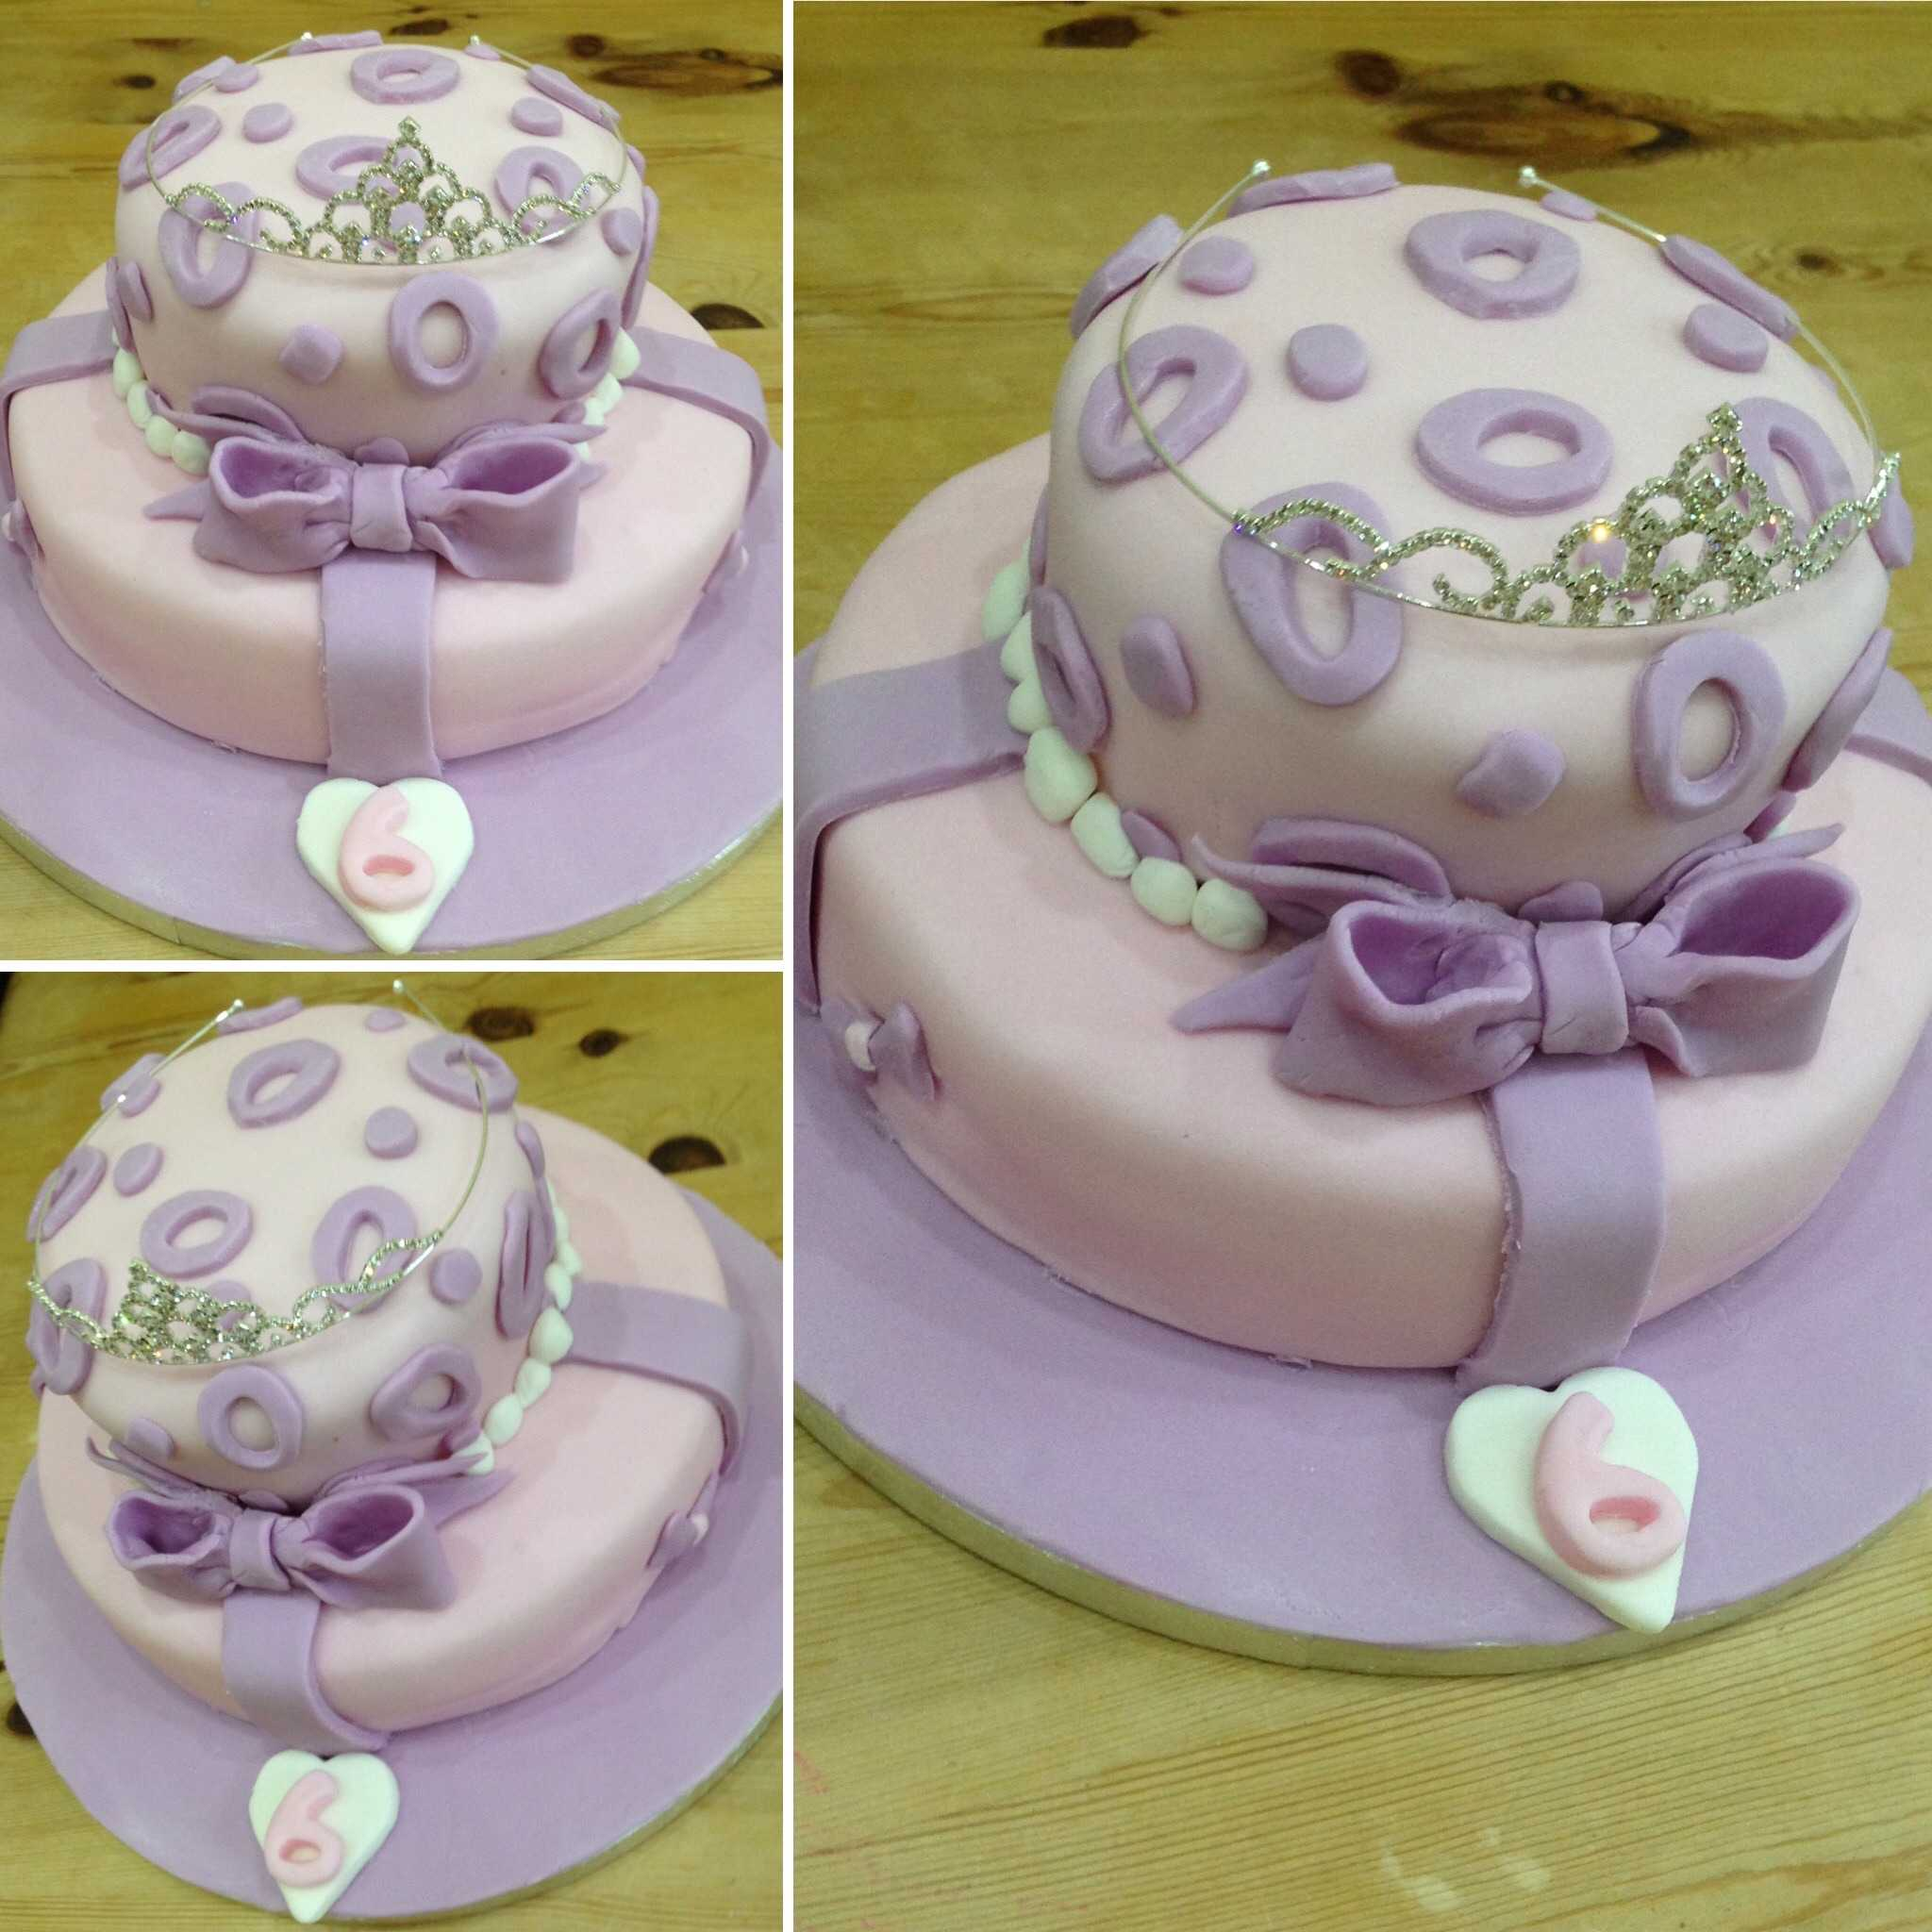 Wedding Cake Gallery   Our CupCakery